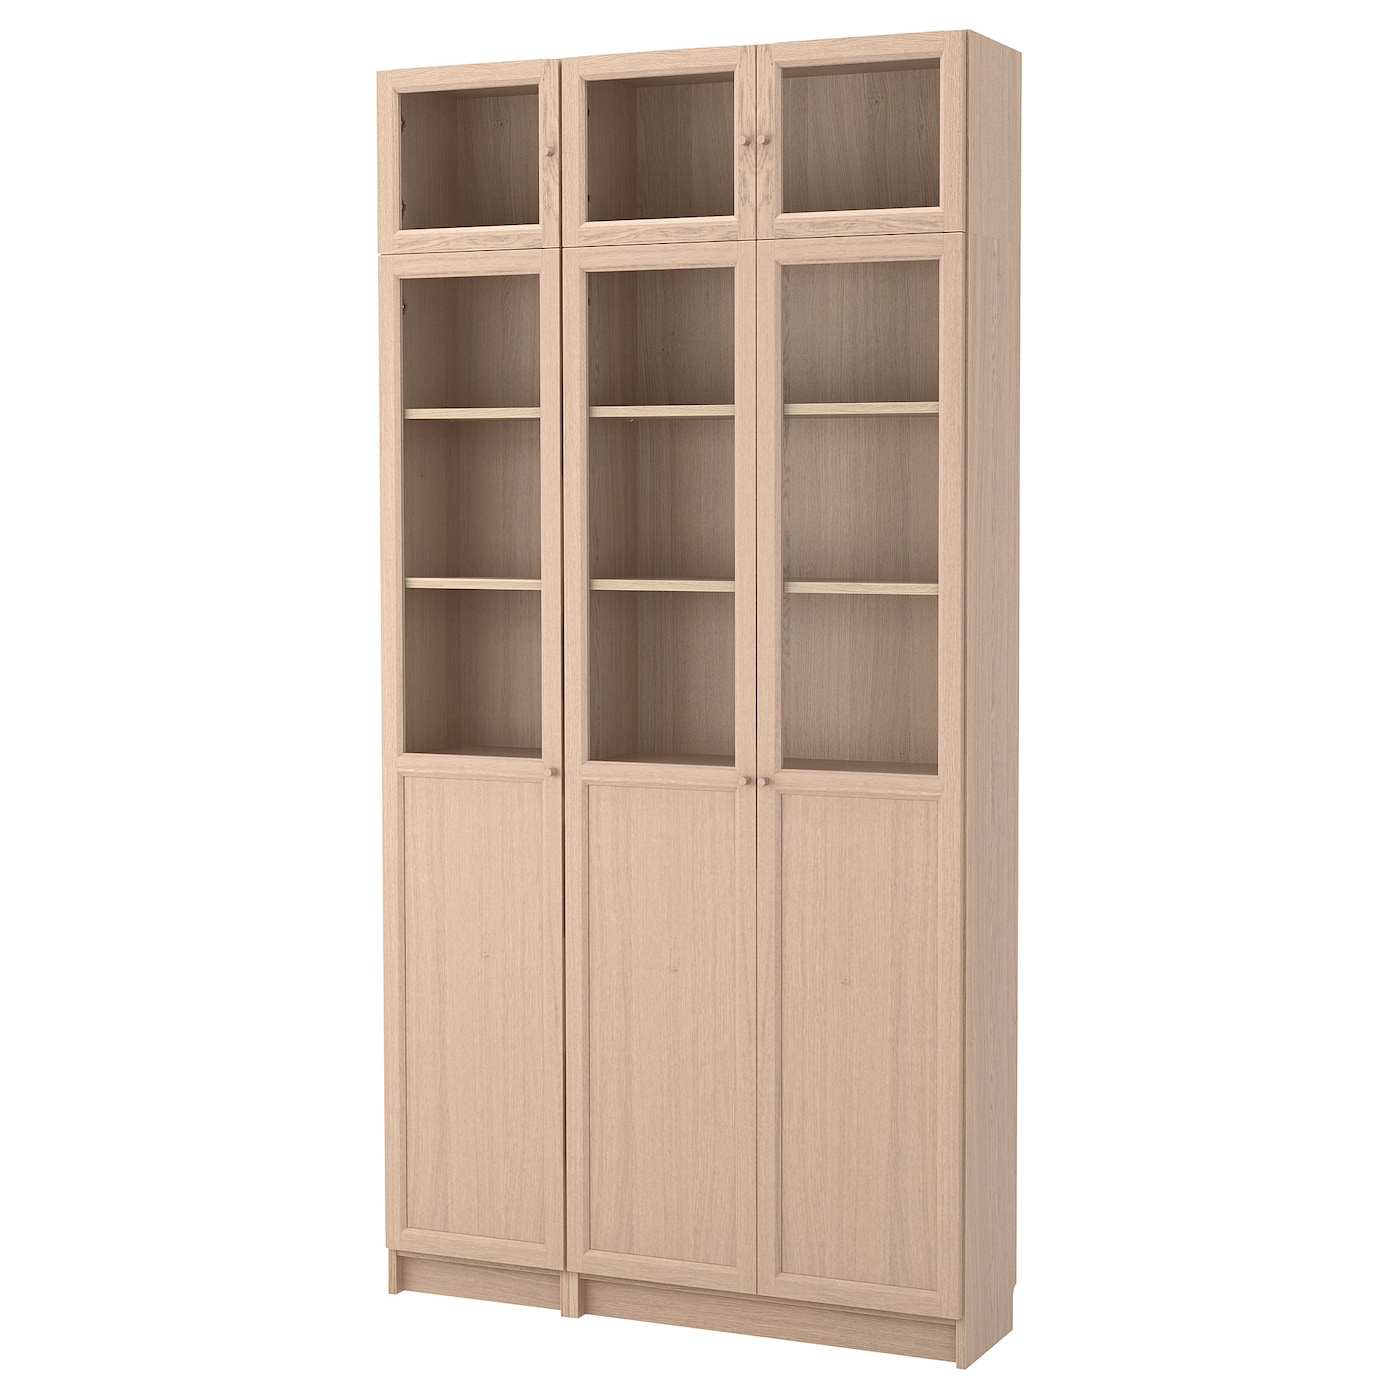 billy oxberg bookcase combination glass doors white stained oak veneer glass 120 x 30 x 237 cm. Black Bedroom Furniture Sets. Home Design Ideas